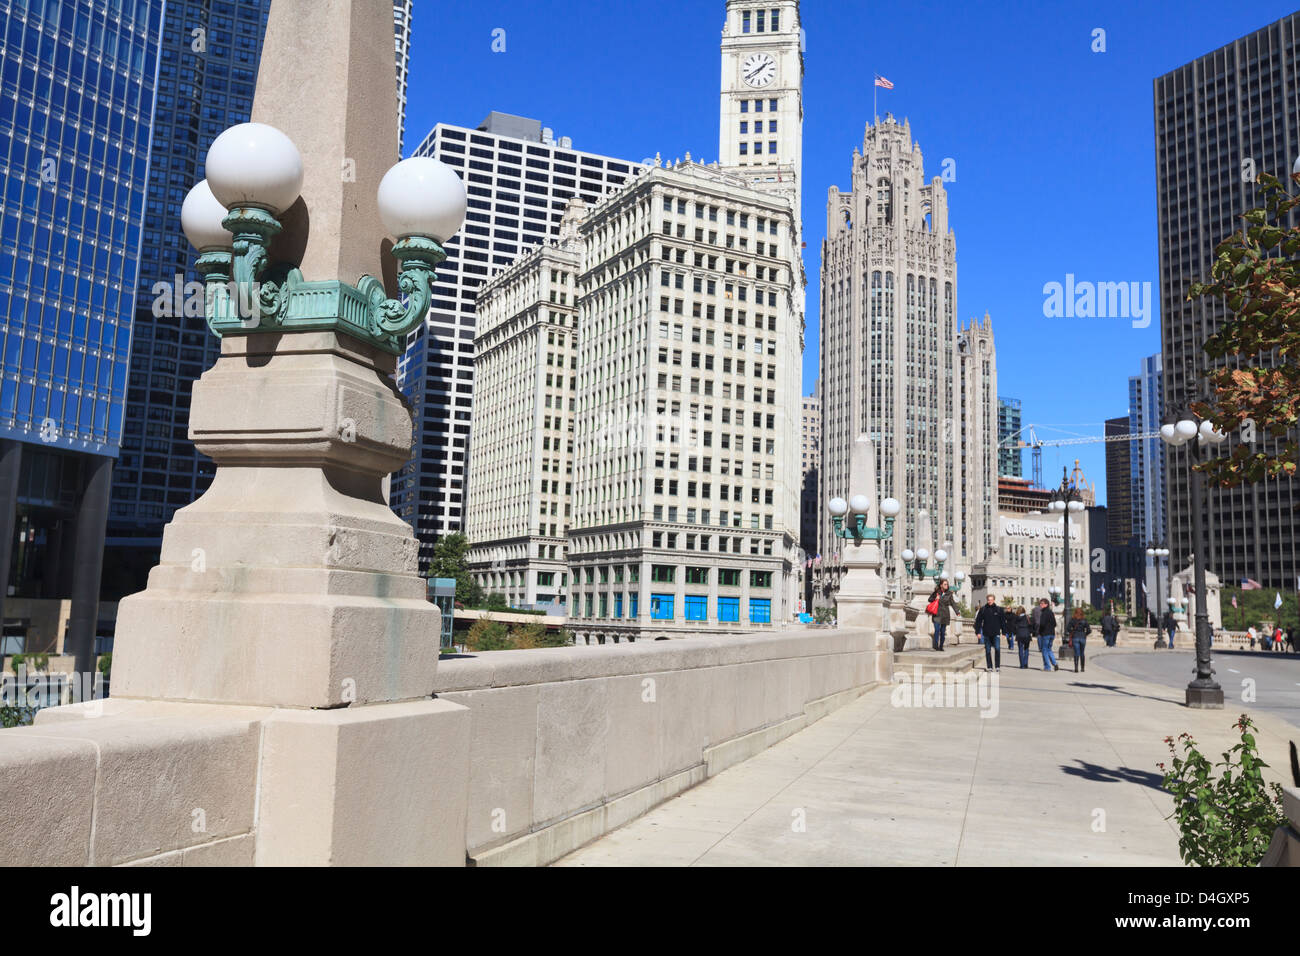 Chicago Riverwalk on West Wacker Drive with Trump Tower, Wrigley Building and Tribune Tower, Chicago, Illinois, - Stock Image